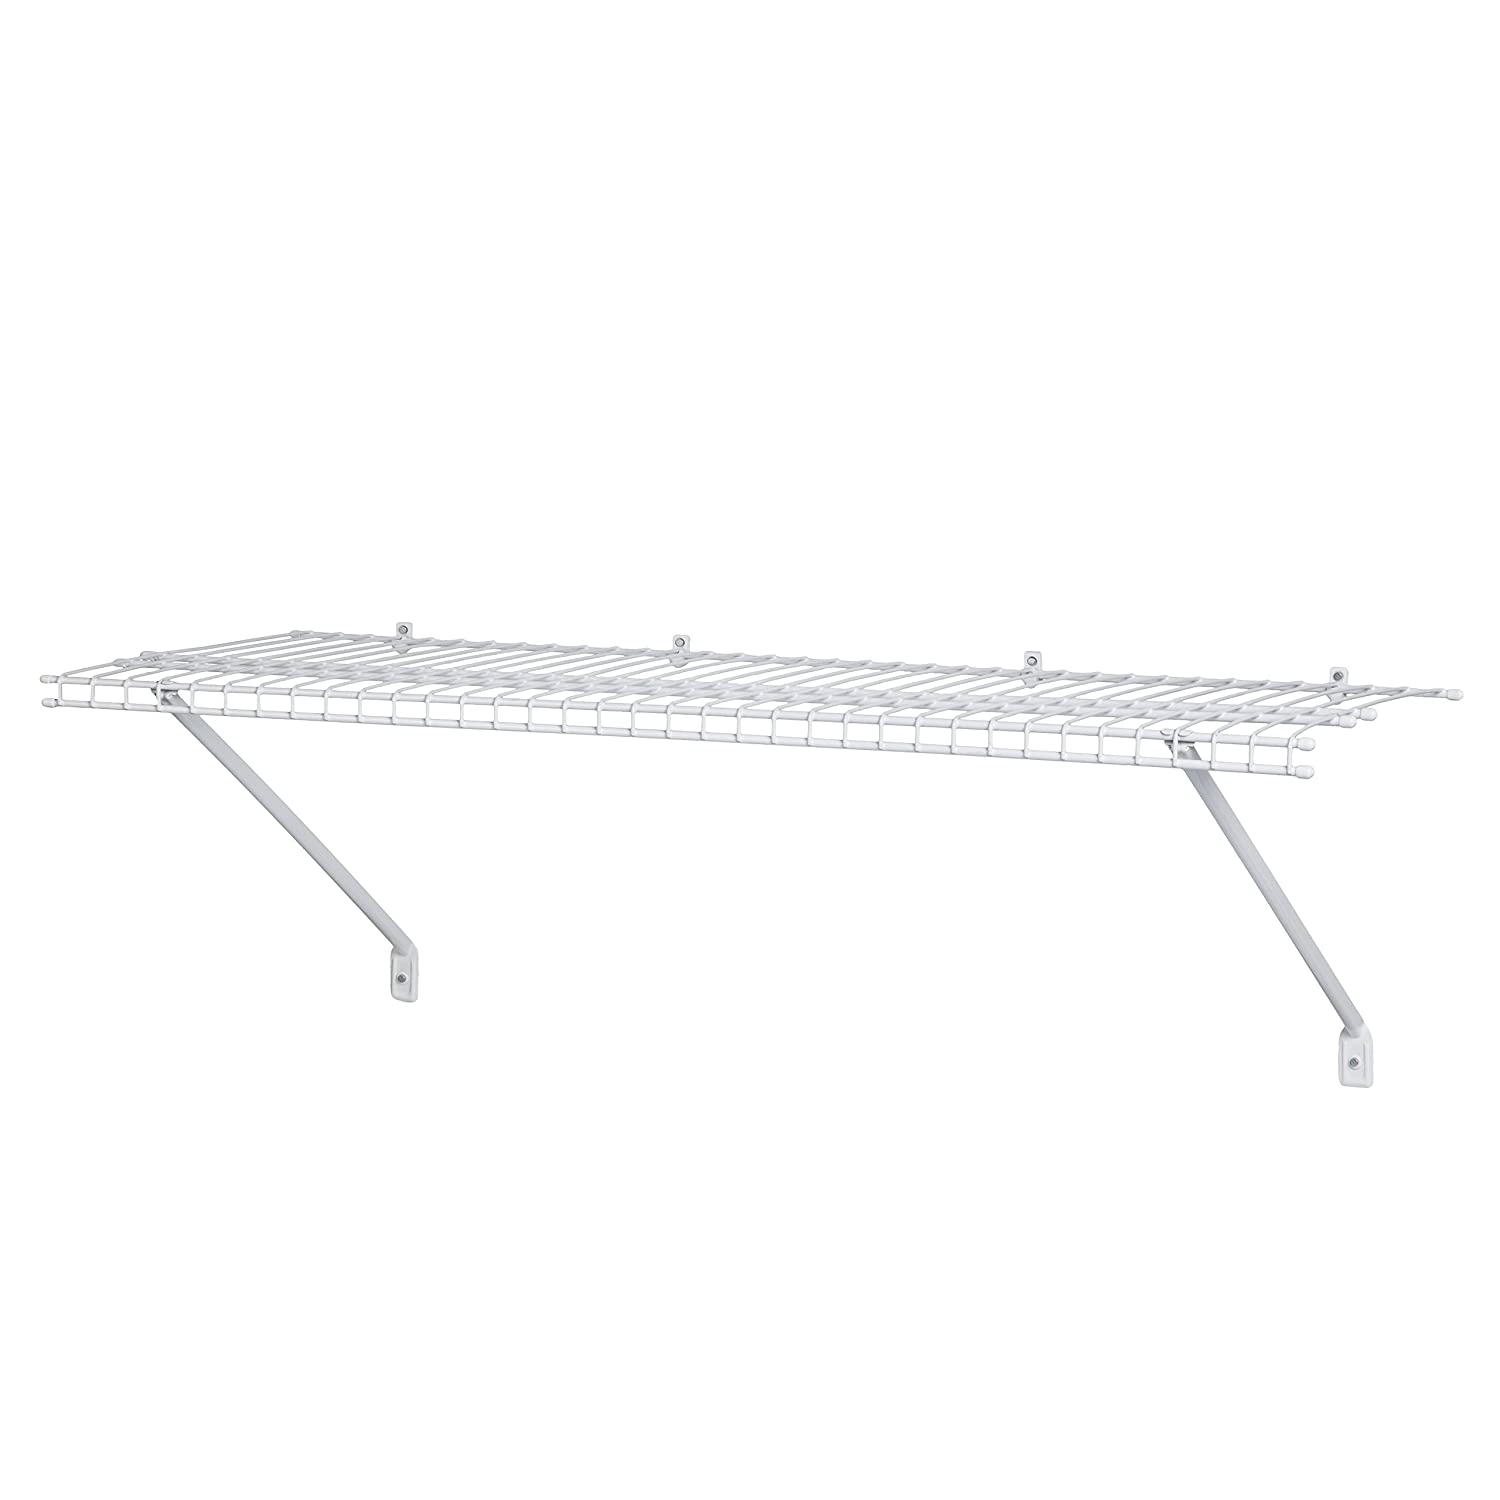 ClosetMaid 1031 Wire Shelf Kit, 3-Feet X 12-Inch, White